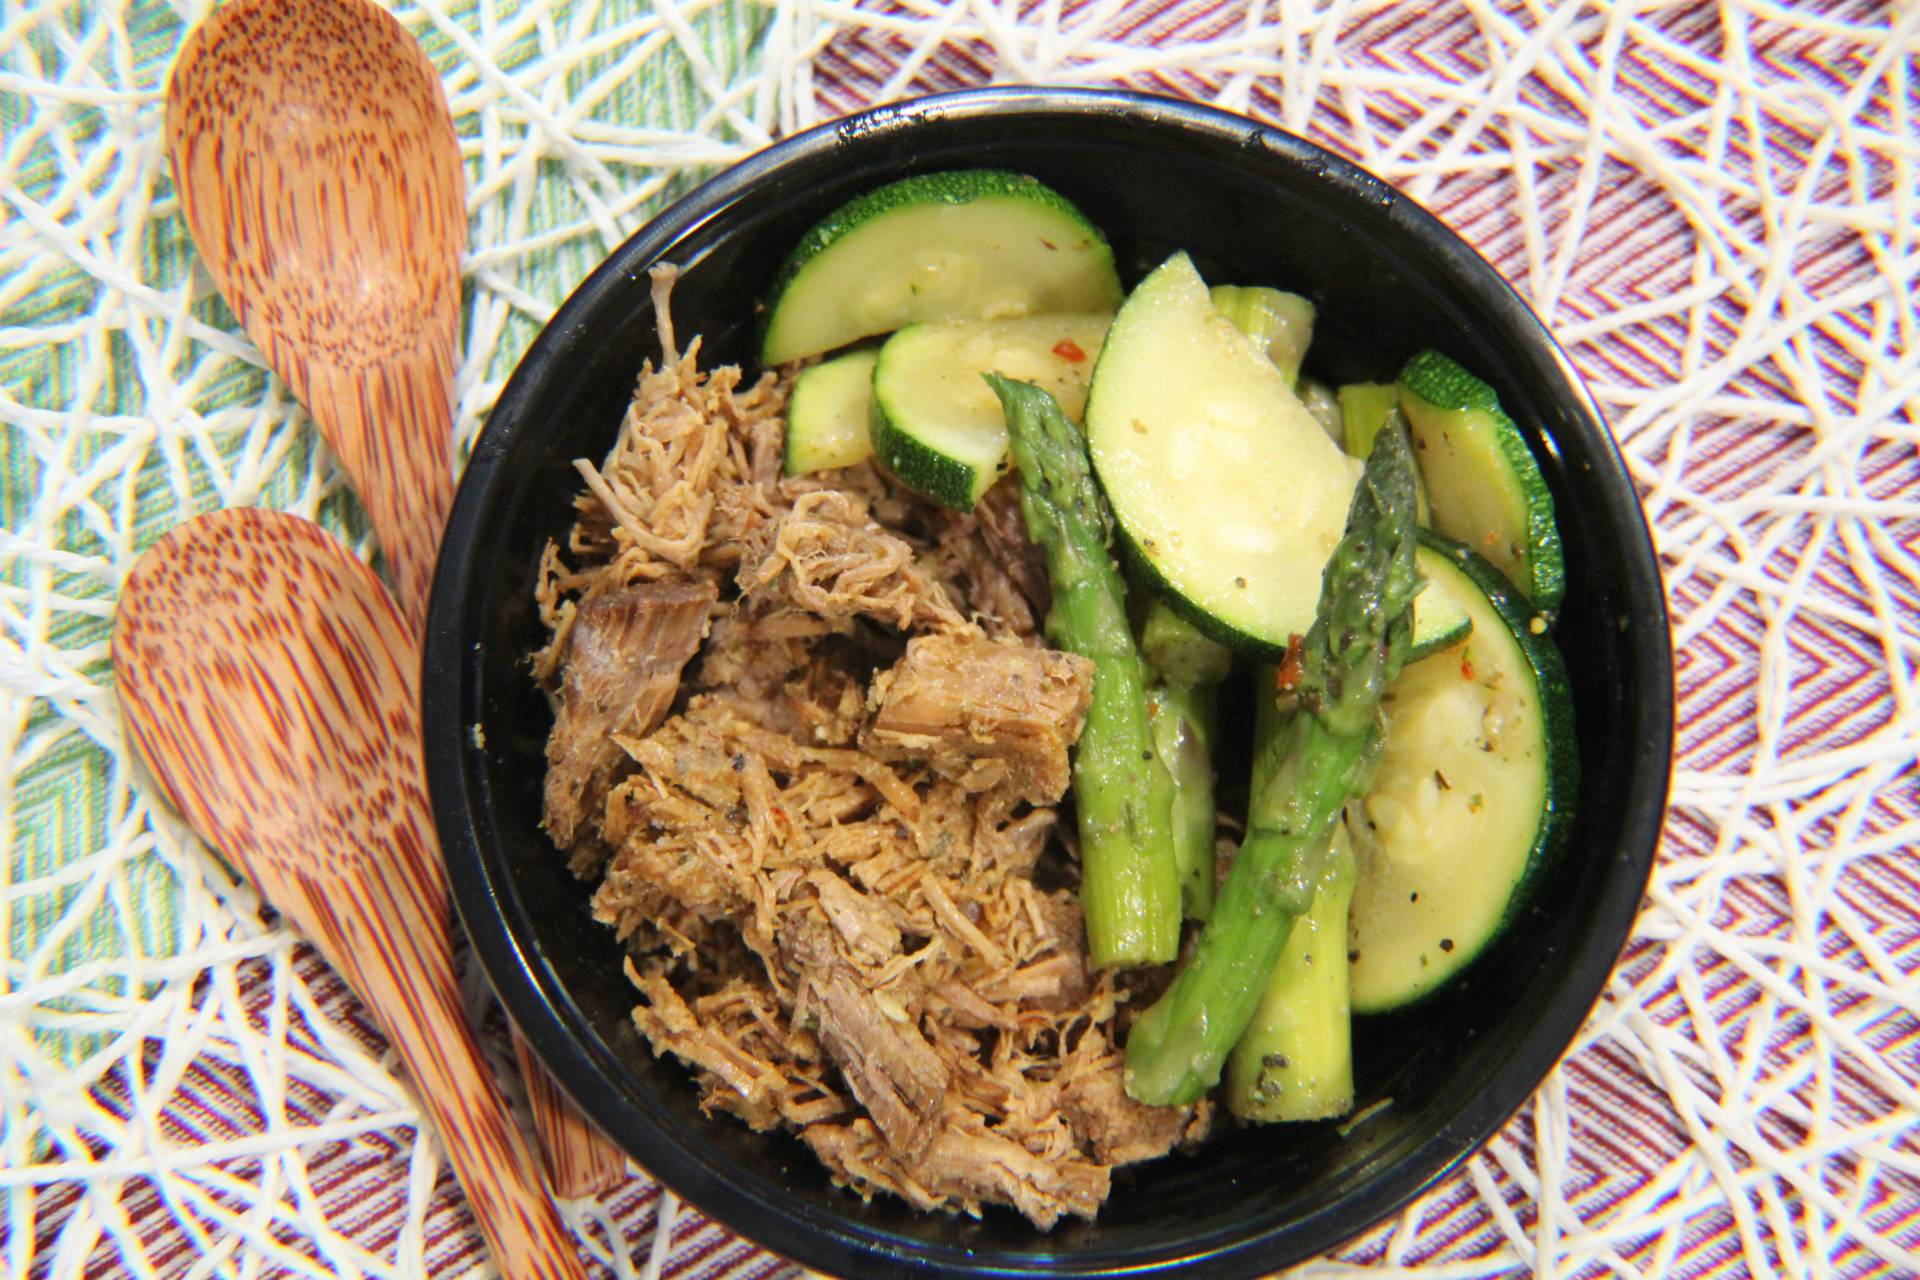 Roast Beef, Asparagus and Zucchini